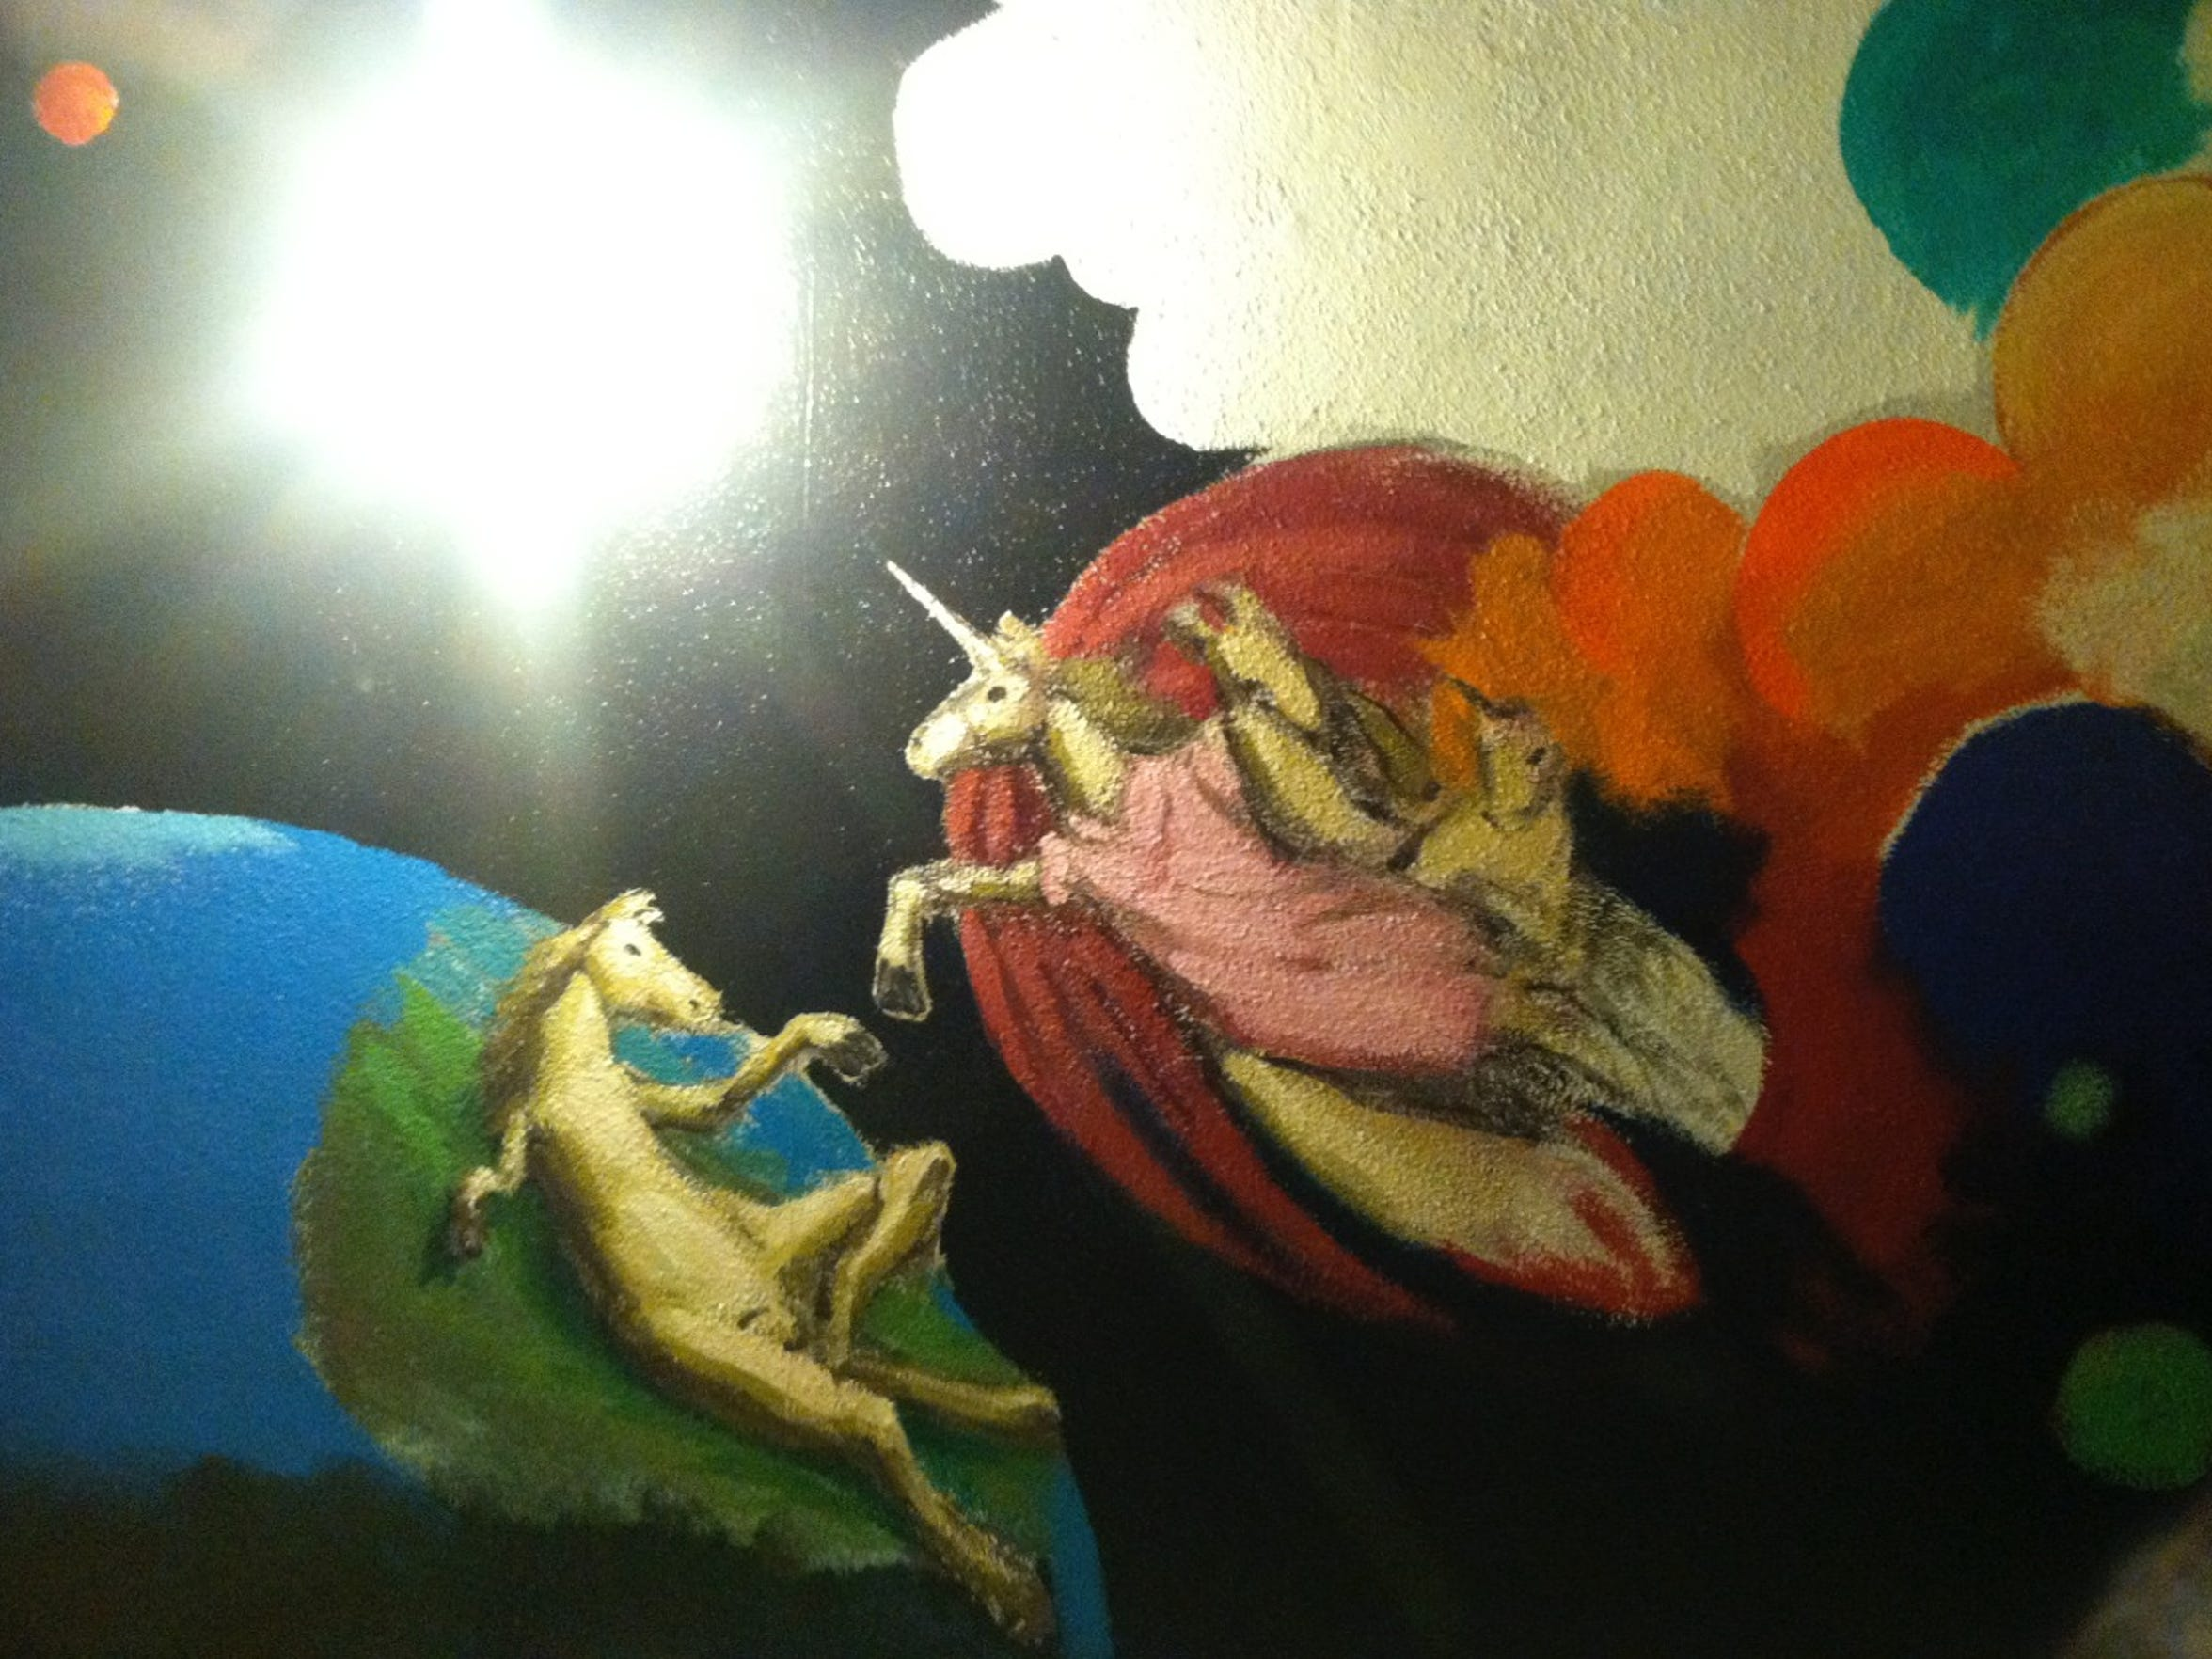 At one point, a room inside the Charles Mansion/Green House had hand-painted unicorns on the walls.